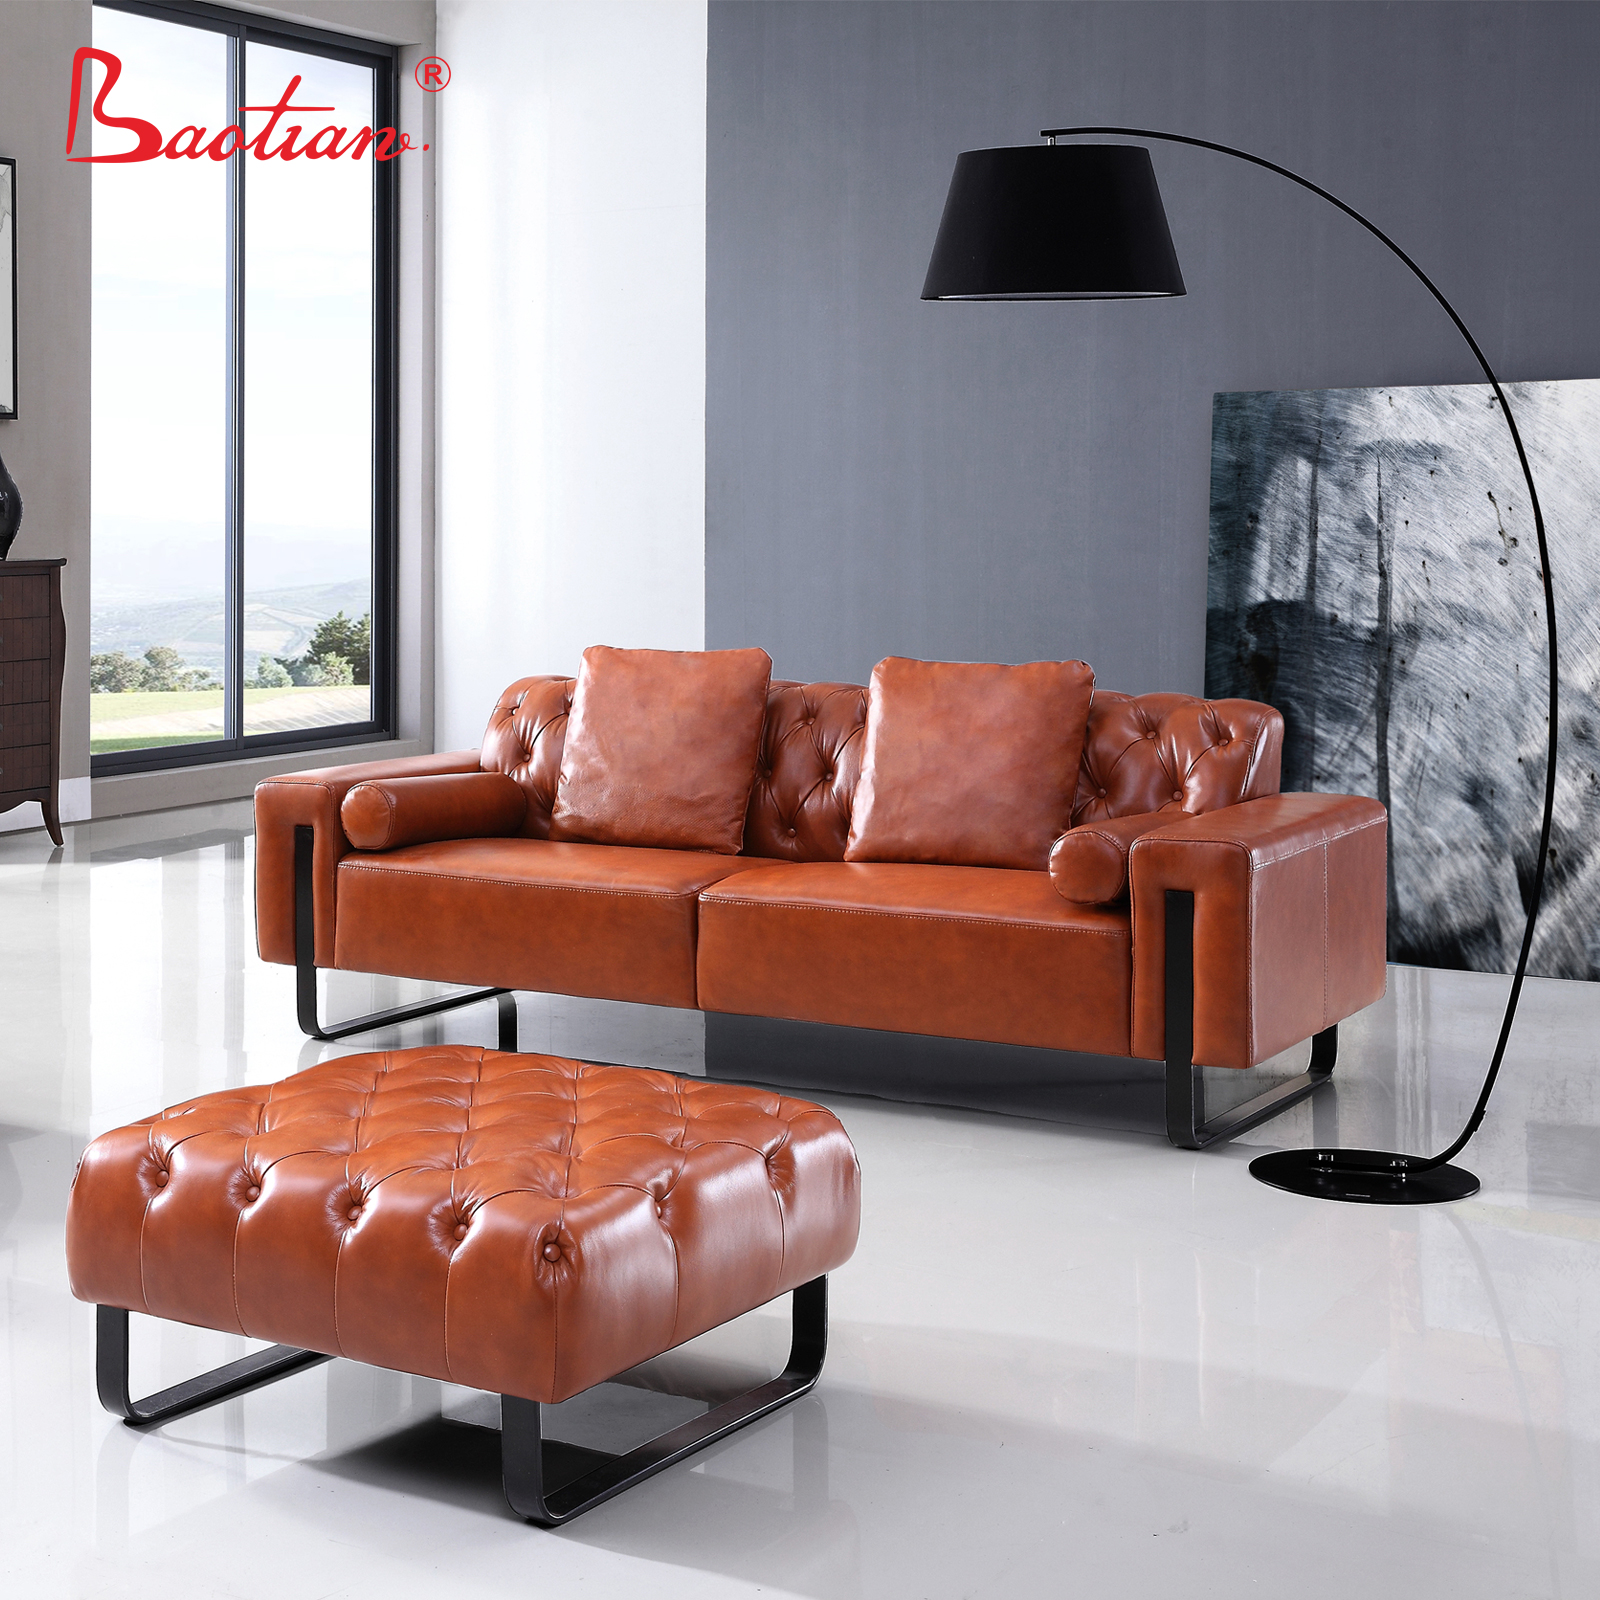 Wondrous Comfortable Recliner Chair Sofa Luxury Sofa Set Solid Wood Home Furniture Chair Living Room Chair Buy Dining Room Chair Modern Italian Dining Room Alphanode Cool Chair Designs And Ideas Alphanodeonline